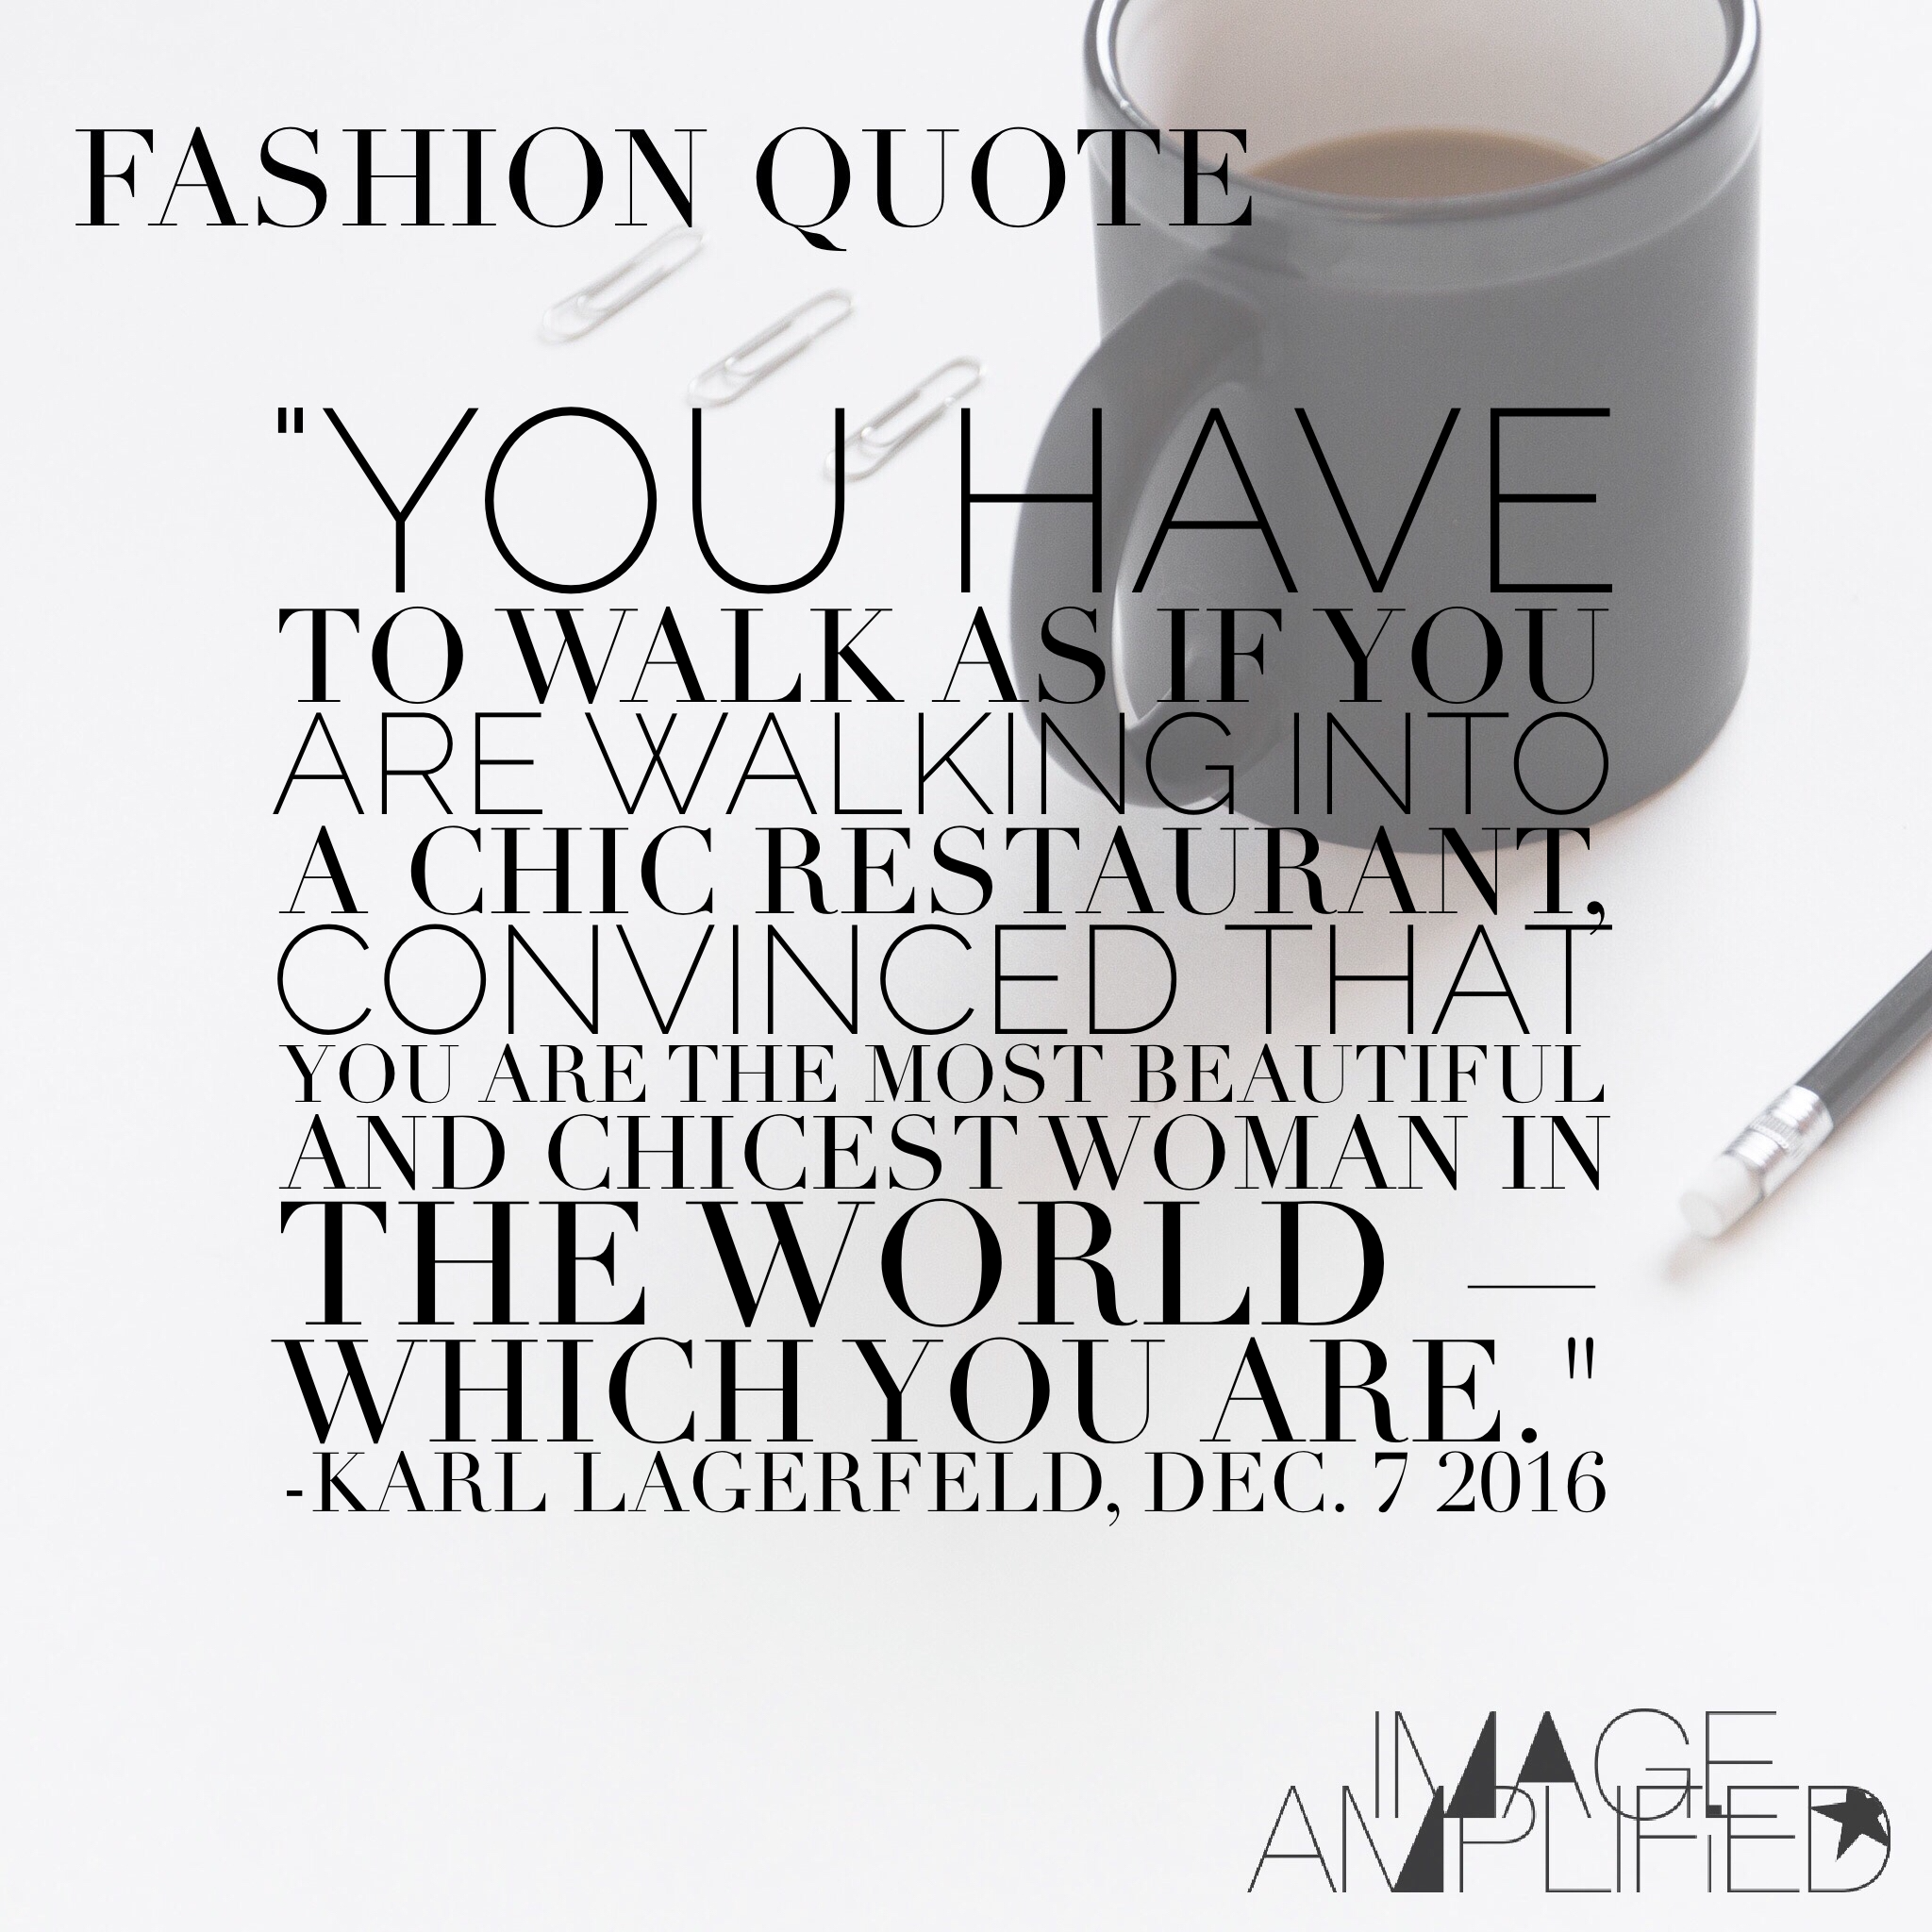 Fashion Quote Karl Lagerfeld On Being The Most Beautiful And